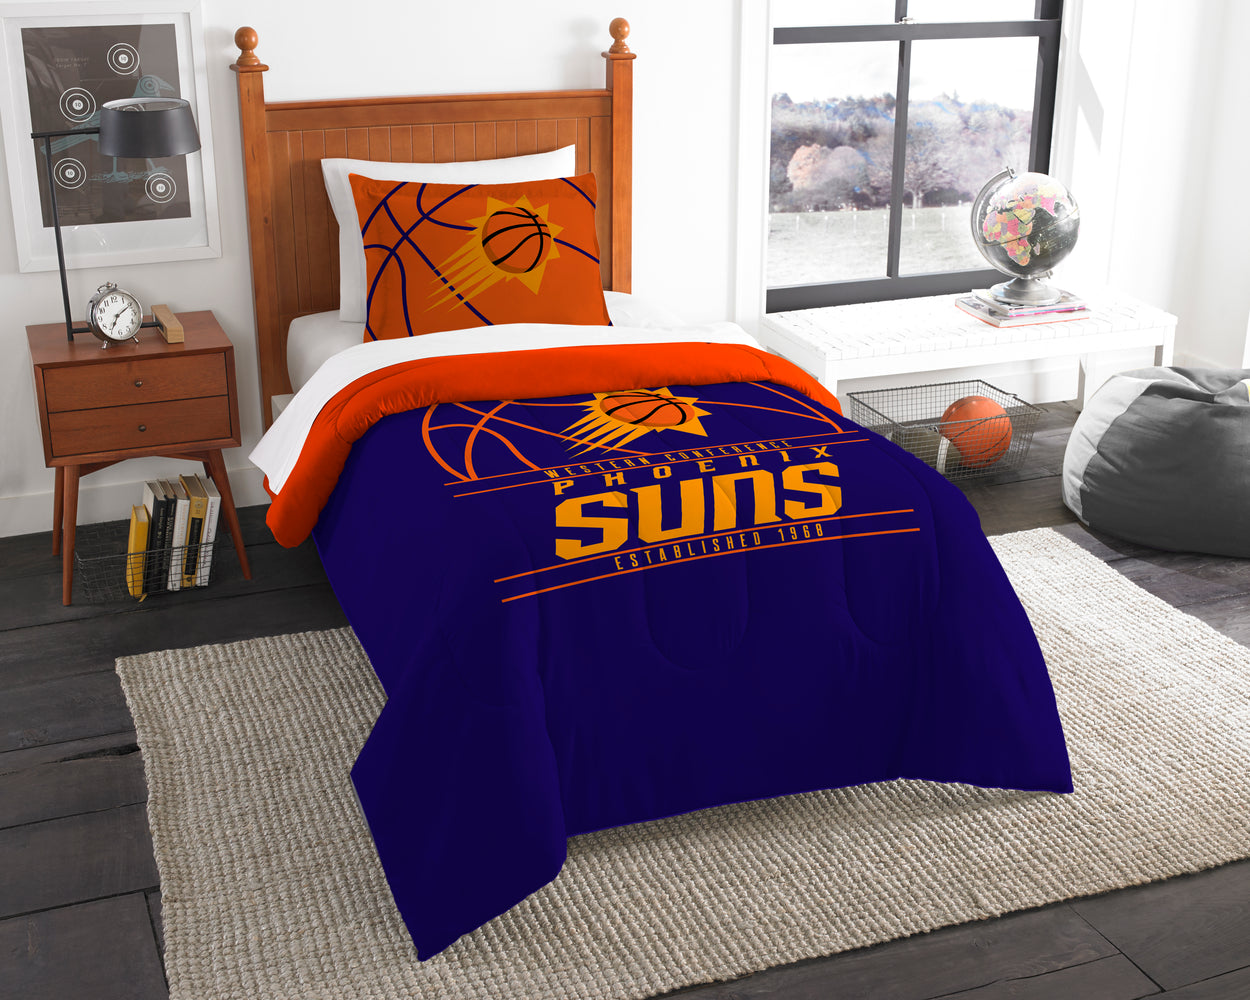 "Suns OFFICIAL National Basketball Association, Bedding, """"Reverse Slam"""" Printed Twin Comforter (64""""x 86"""") & 1 Sham (24""""x 30"""") Set  by The Northwest Company"